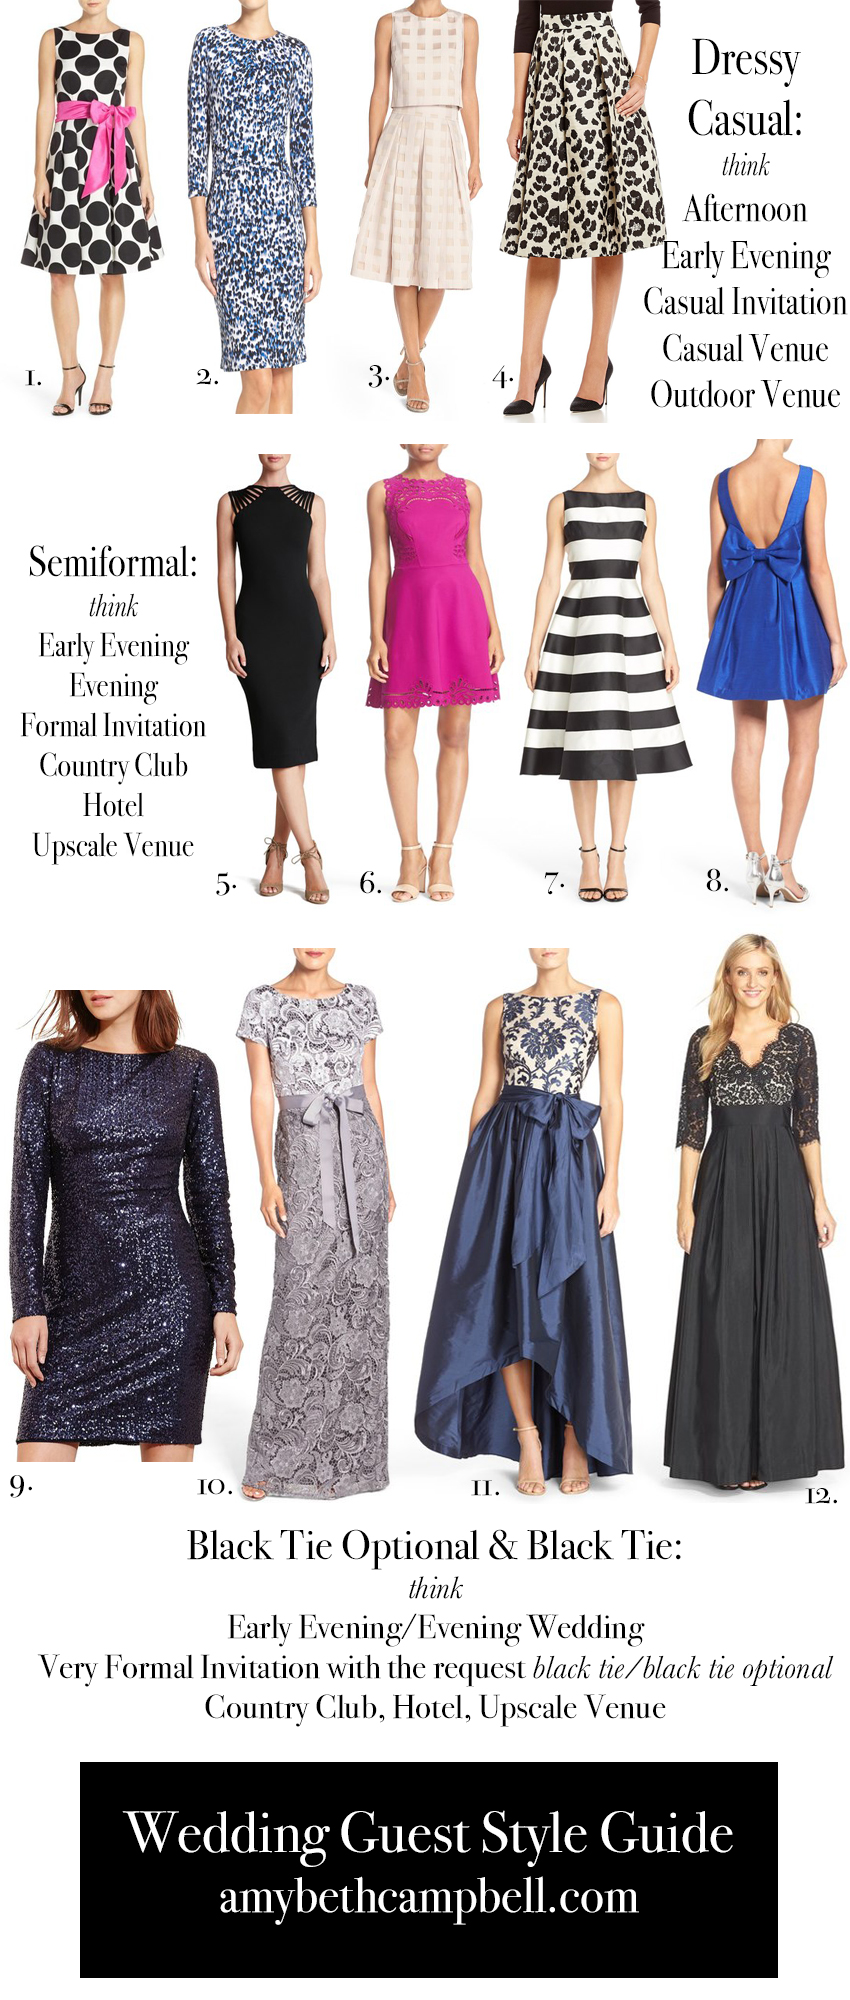 Wedding Guest Style Guide Amy Beth Campbell,Lace Fitted Sweetheart Neckline Wedding Dresses